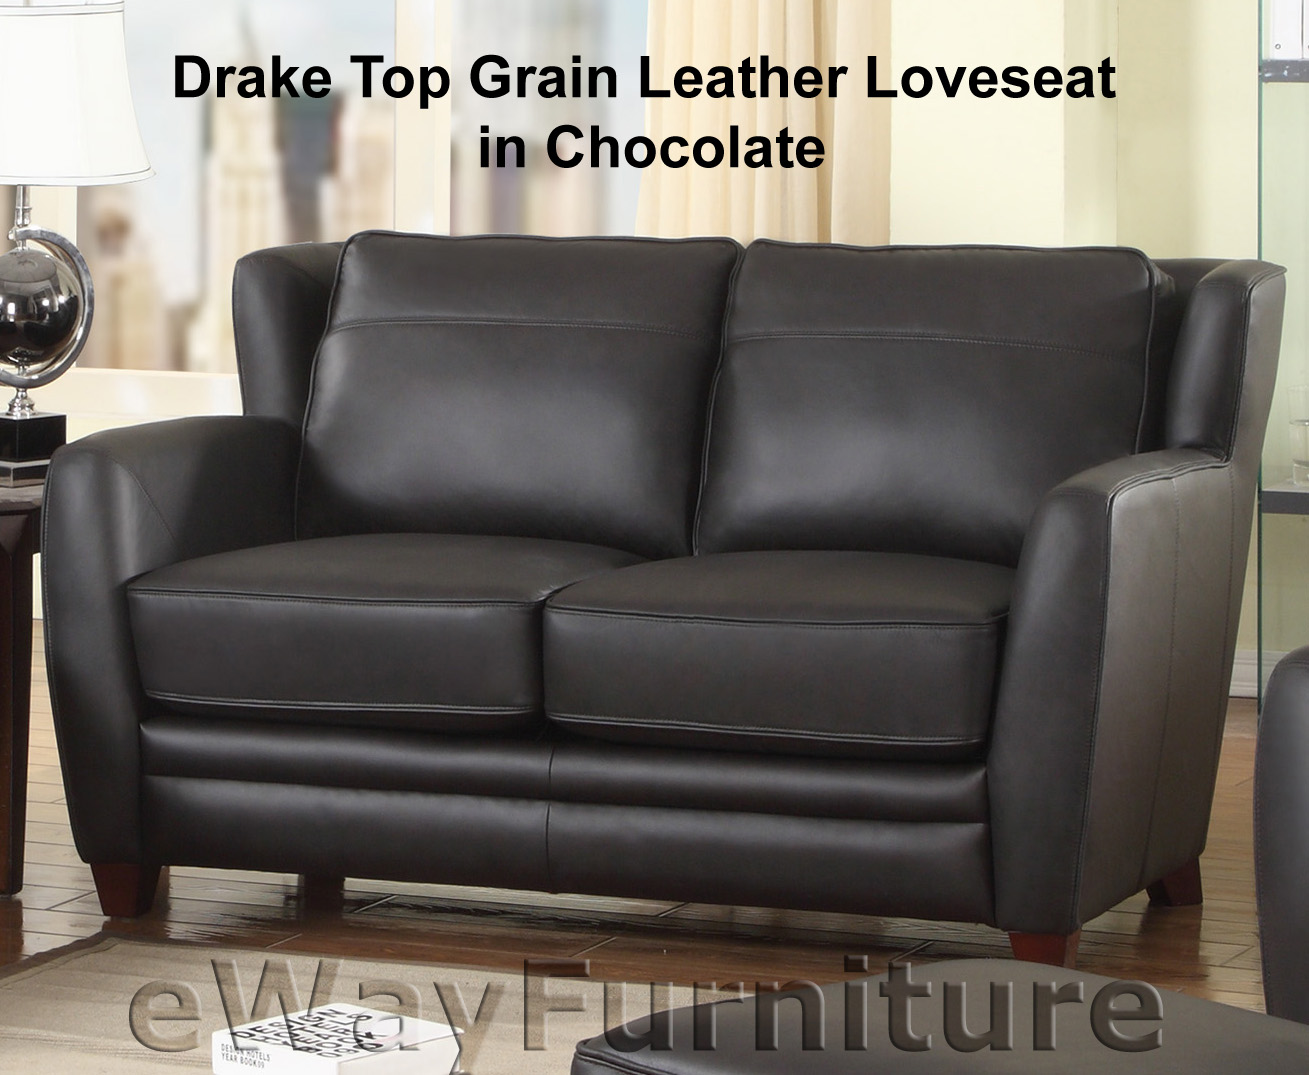 Drake Top Grain Leather Loveseat In Chocolate